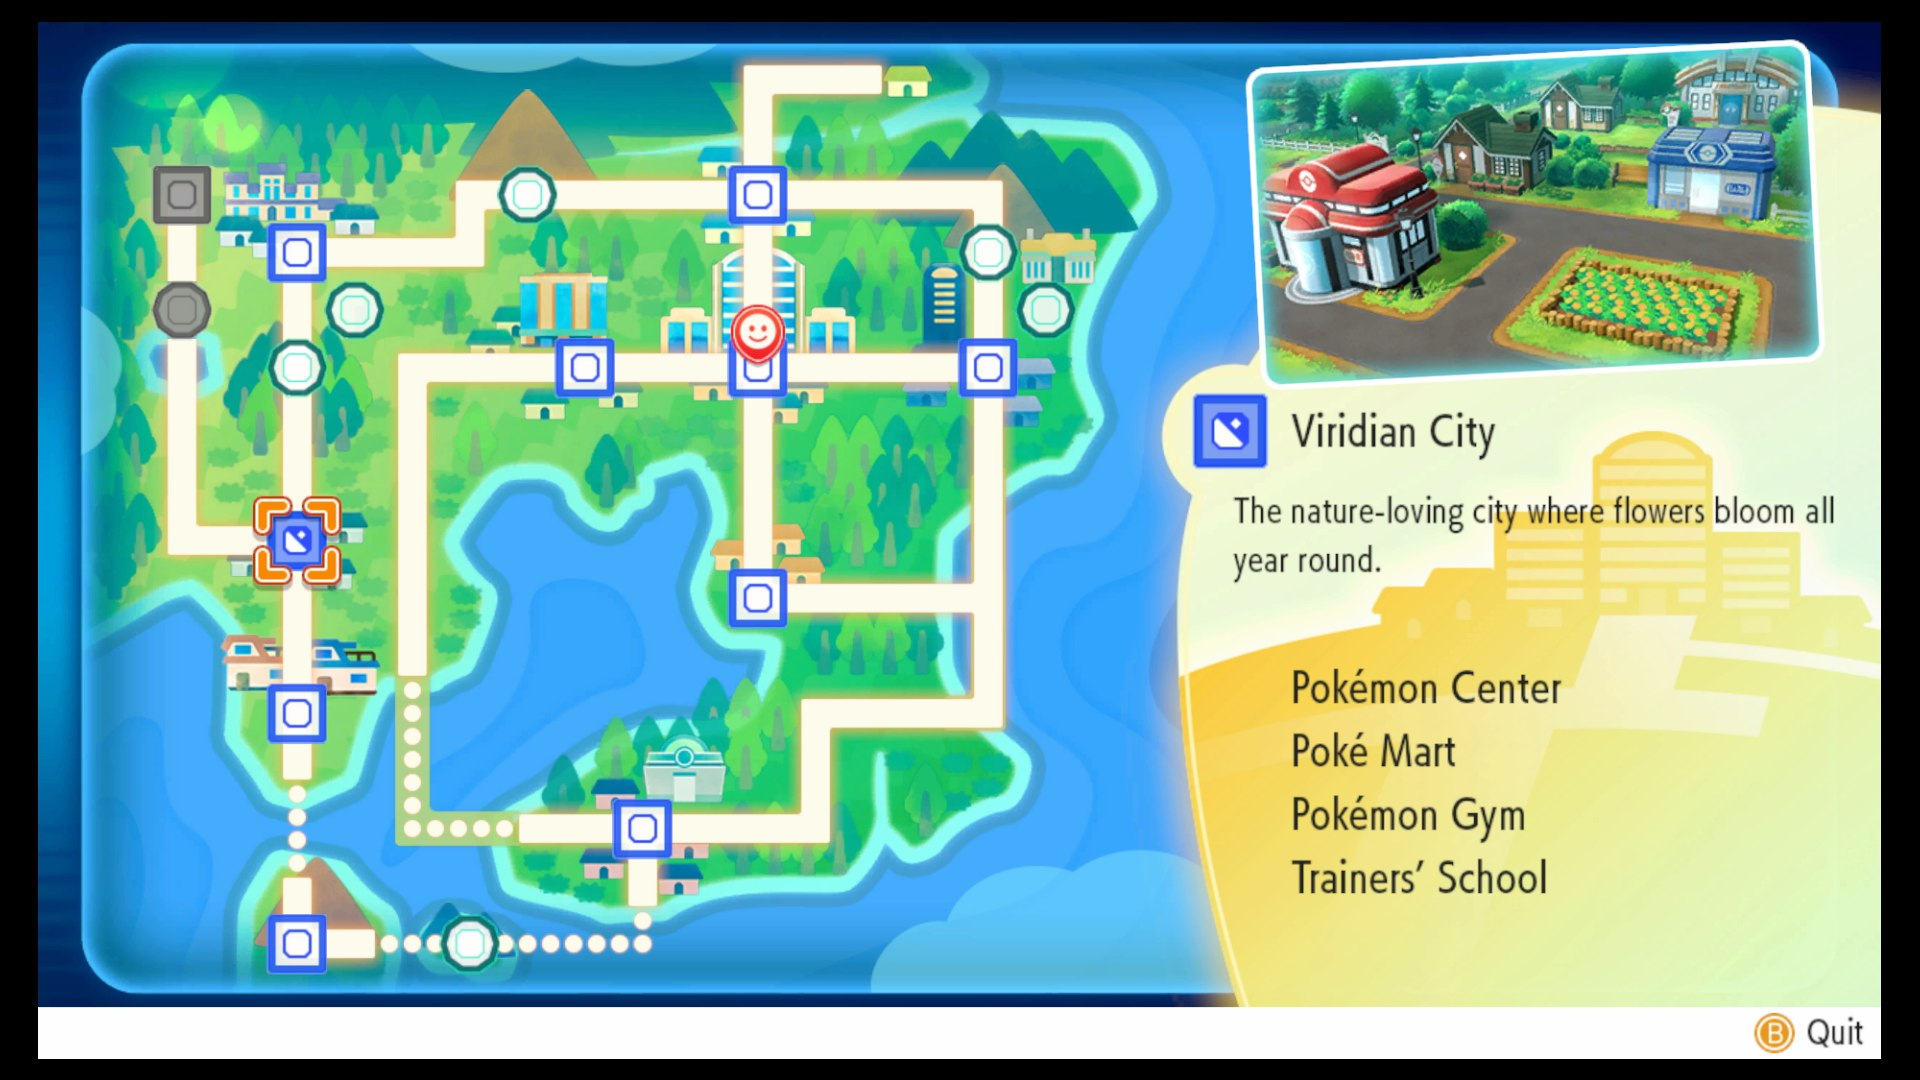 Pokemon Let's Go Viridian City Gym - How to Unlock Viridian